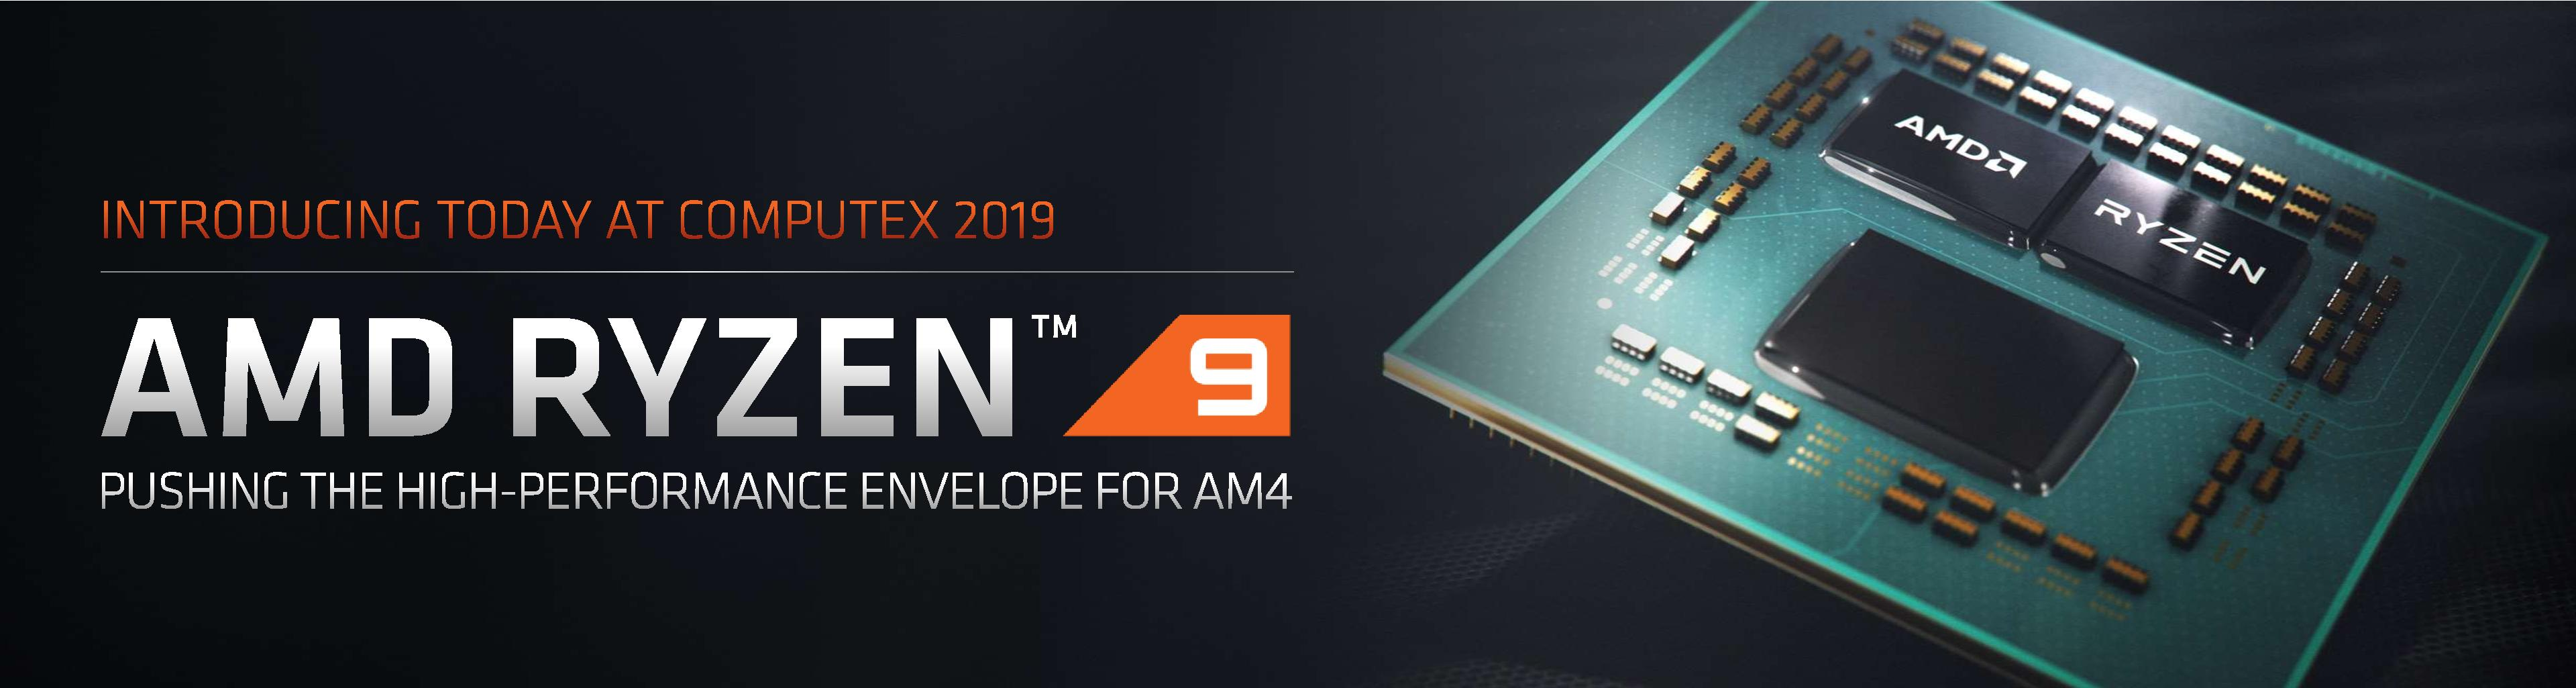 AMD Ryzen 3000 Announced: Five CPUs, 12 Cores for $499, Up to 4 6